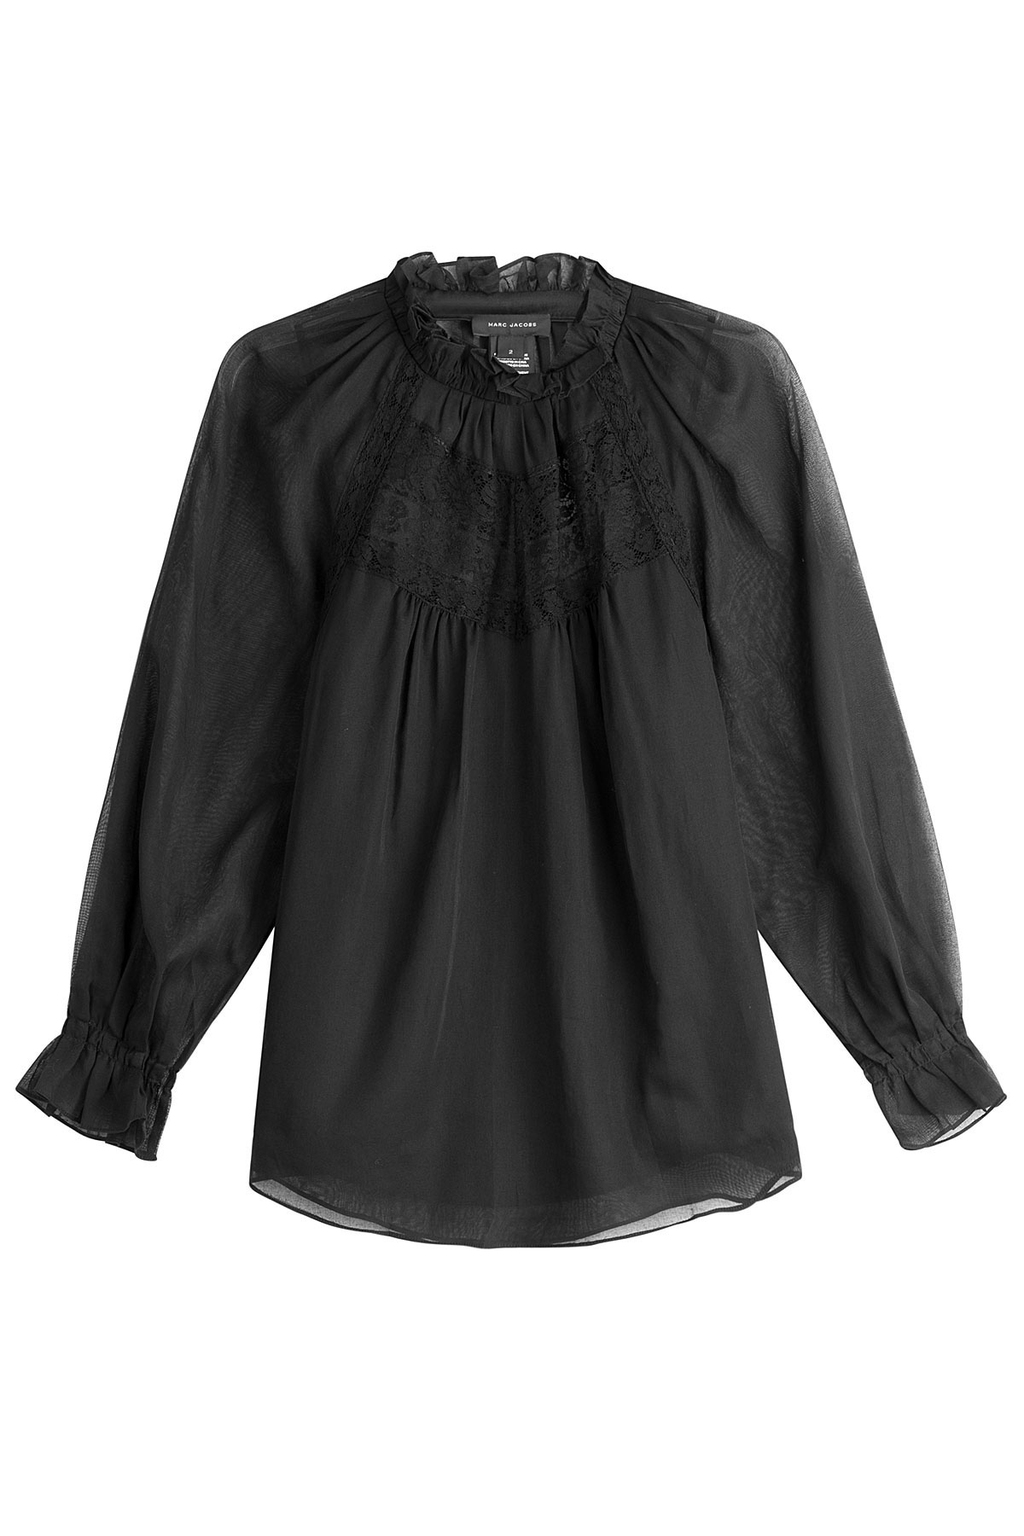 Cotton Blouse With Lace - pattern: plain; neckline: high neck; style: blouse; predominant colour: black; occasions: evening; length: standard; fibres: cotton - 100%; fit: body skimming; sleeve length: long sleeve; sleeve style: standard; texture group: cotton feel fabrics; pattern type: fabric; embellishment: lace; season: a/w 2016; wardrobe: event